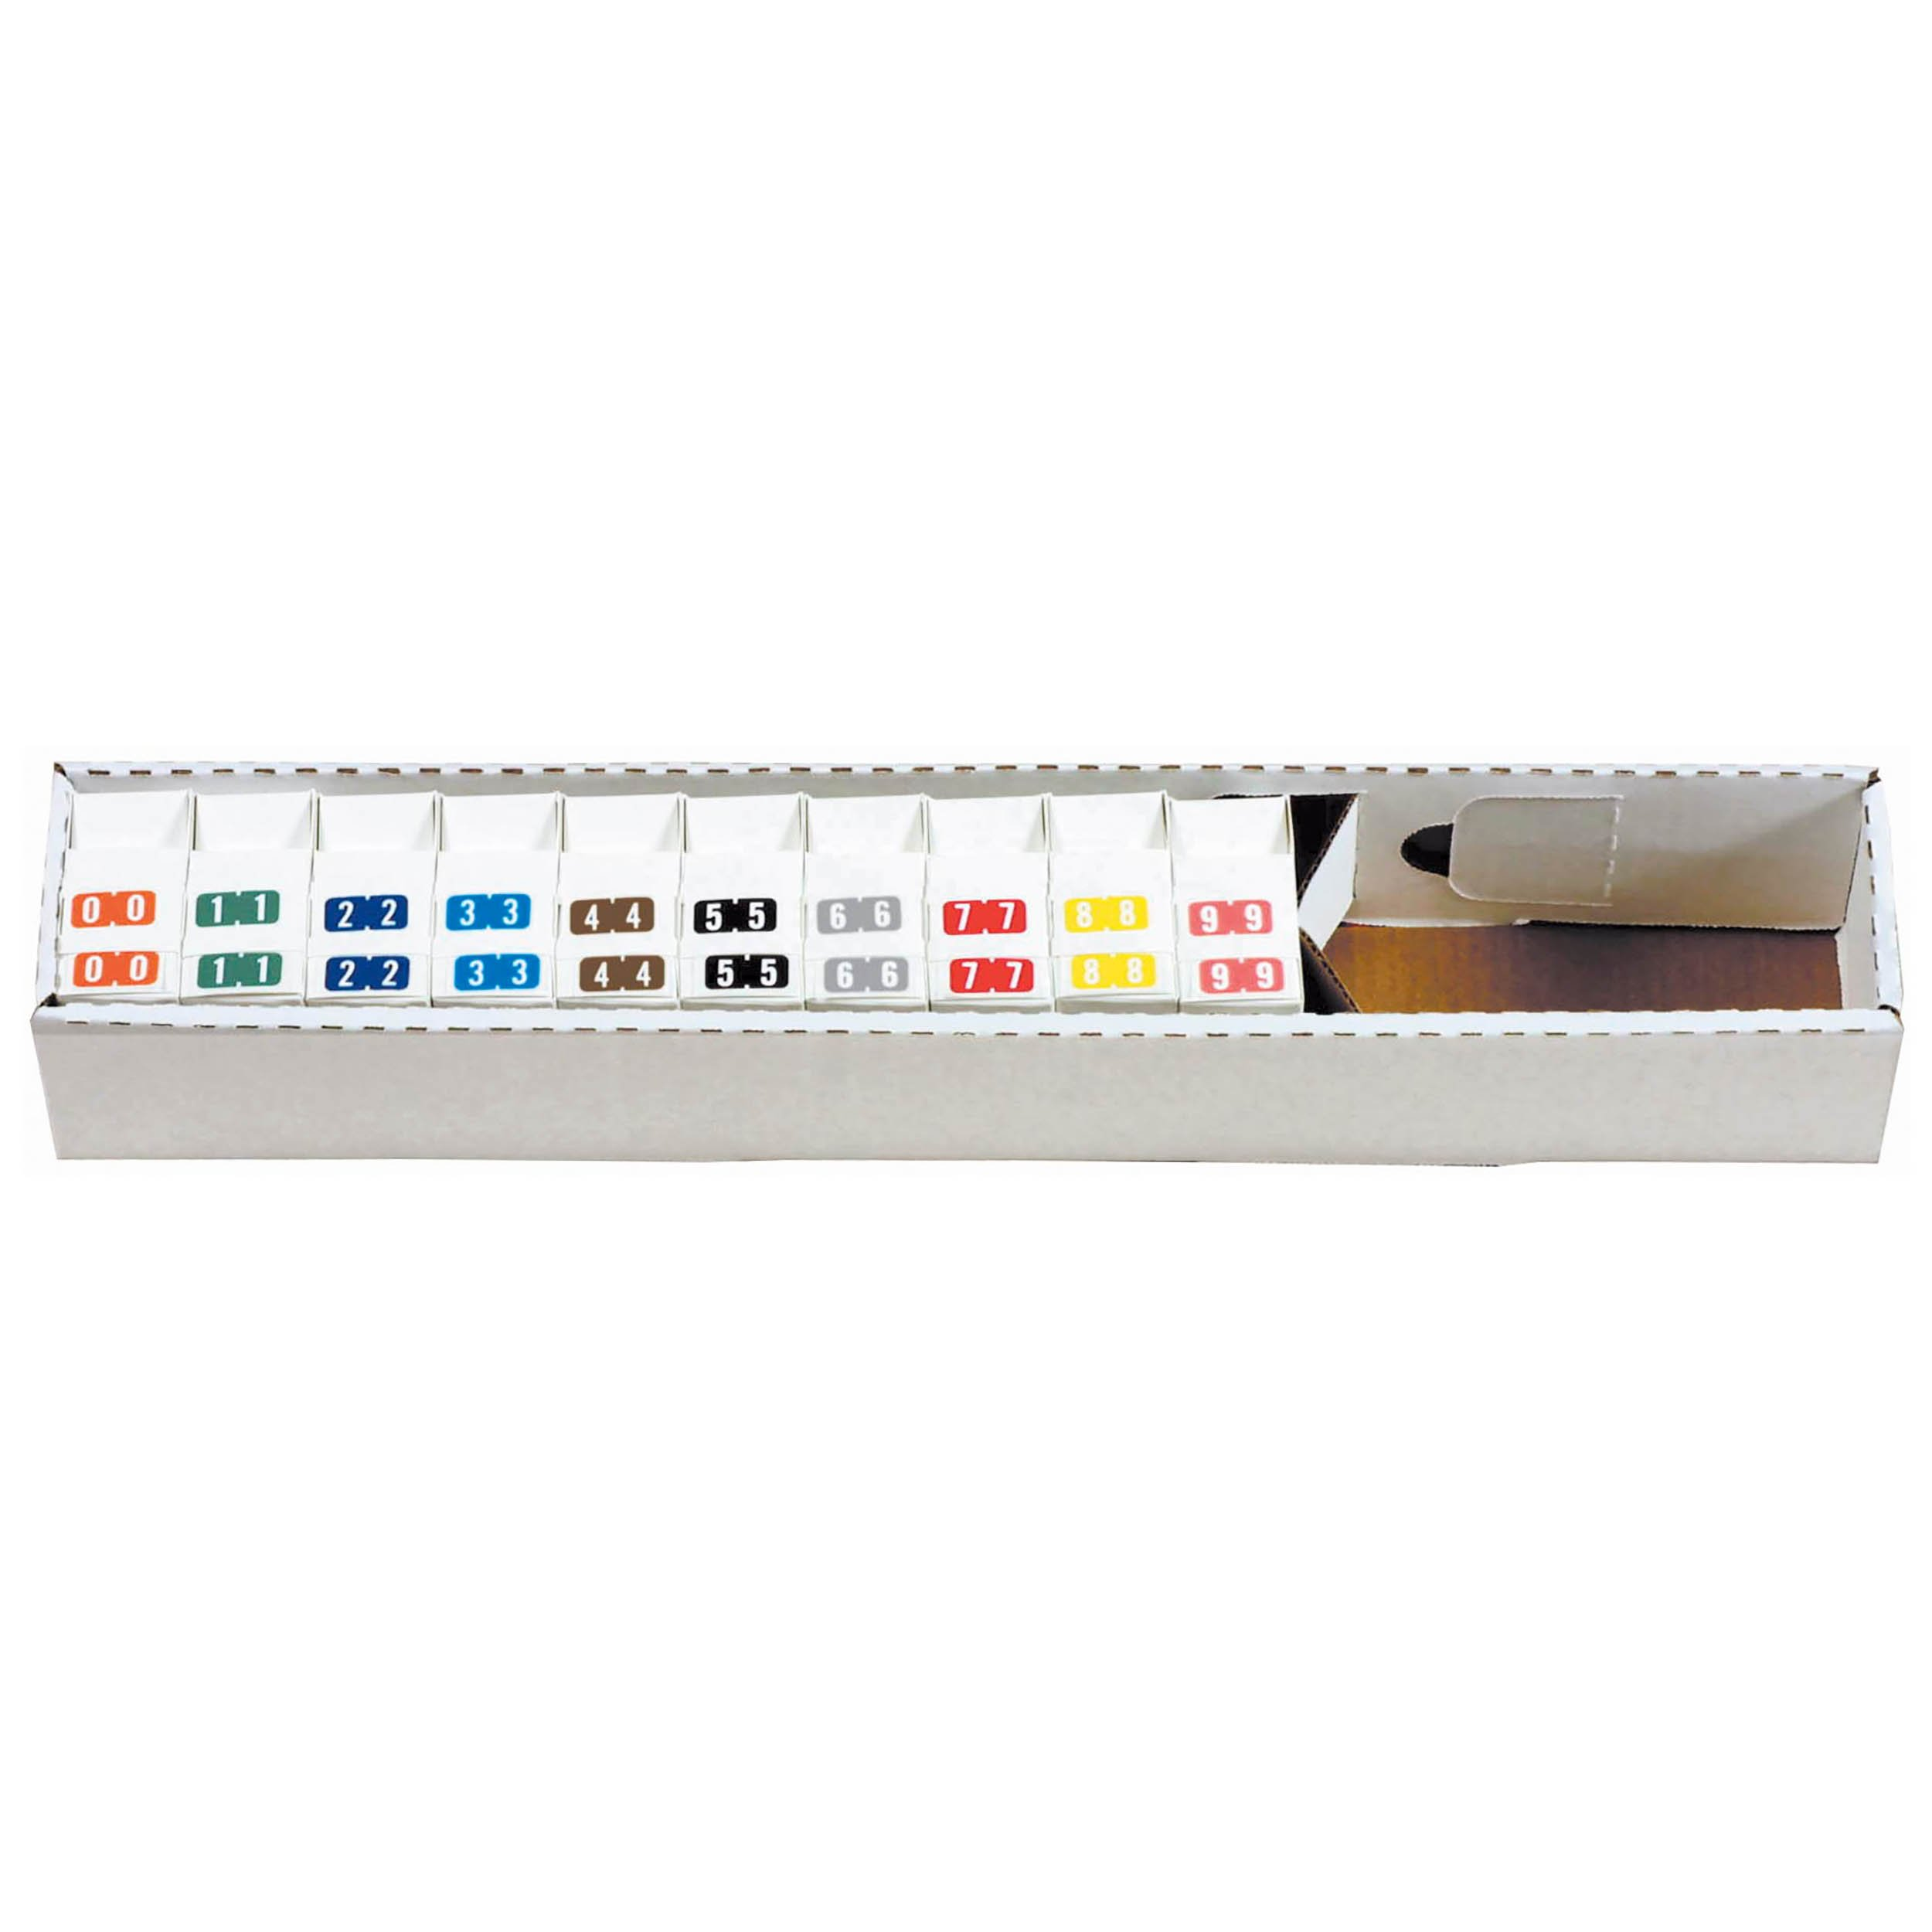 Tab Products 1280 Match Numeric Color Roll Labels - Set of Number 0 to 9